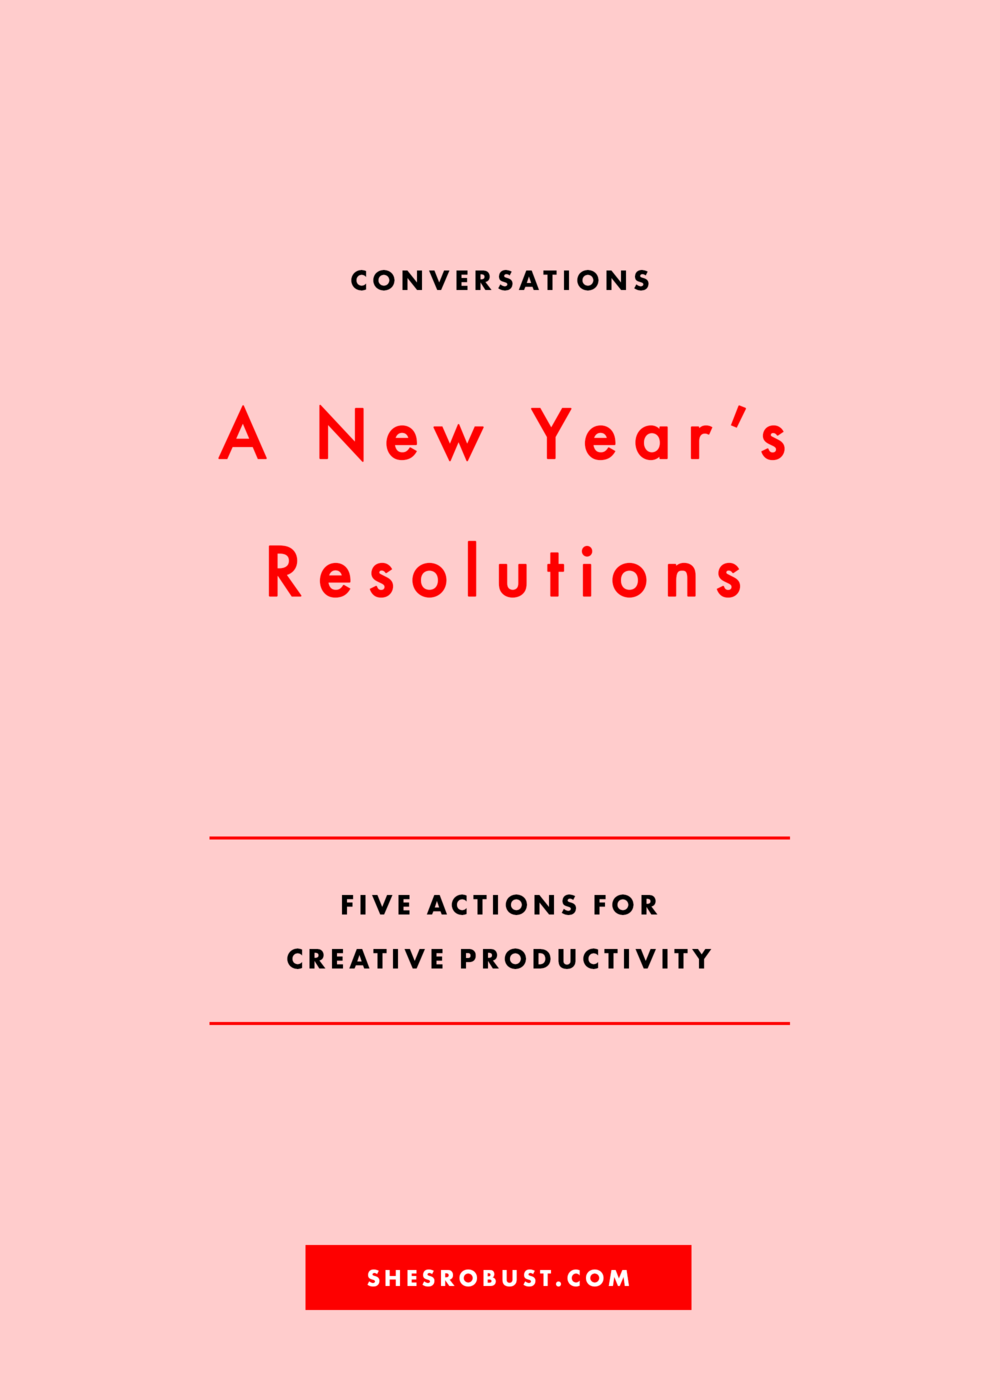 Five action-oriented resolutions for a new year of creative productivity